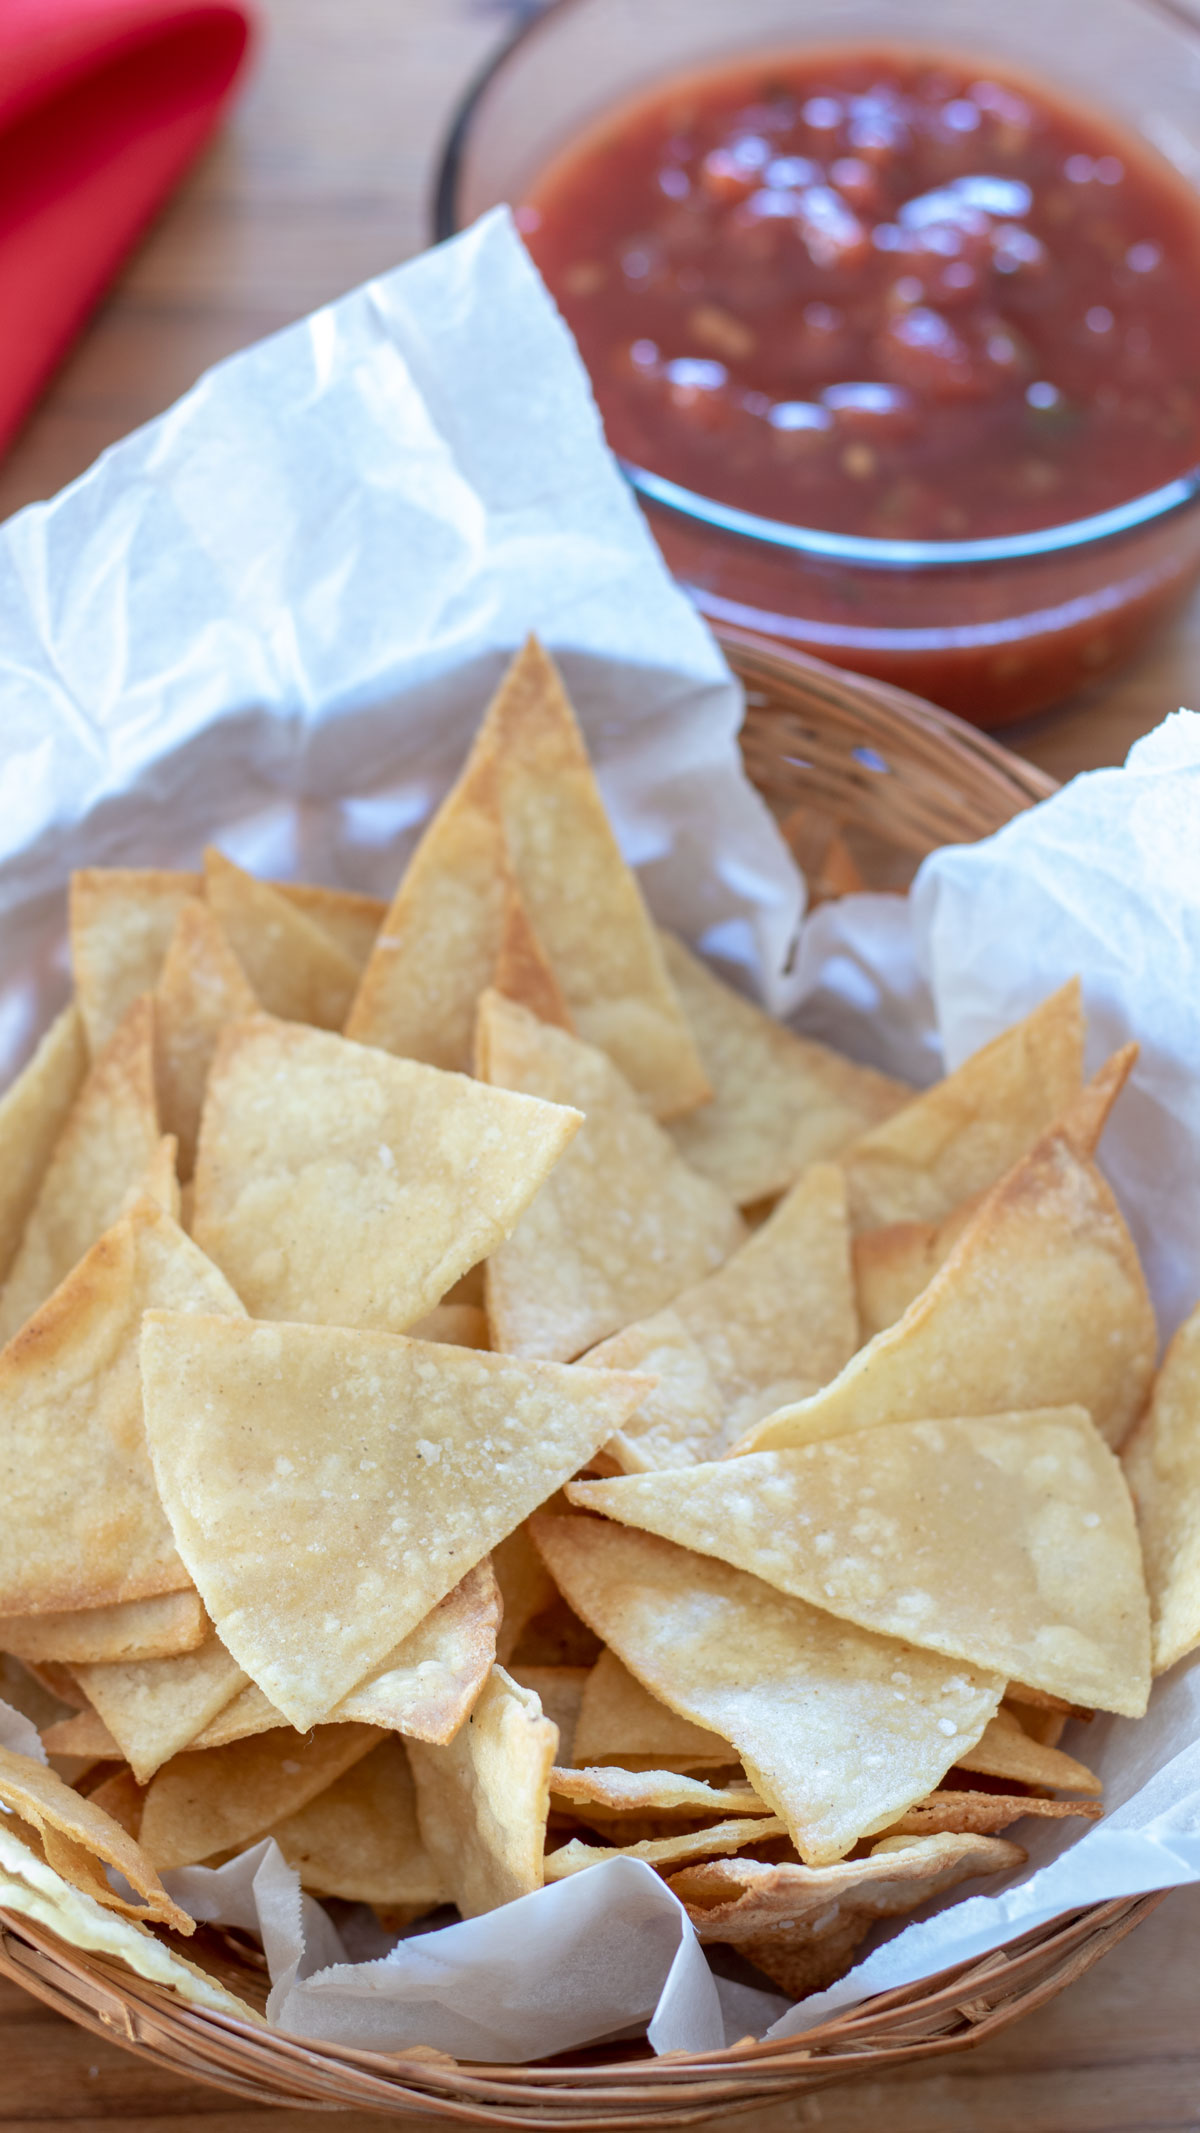 Basket of tortilla chips with bowl of salsa.